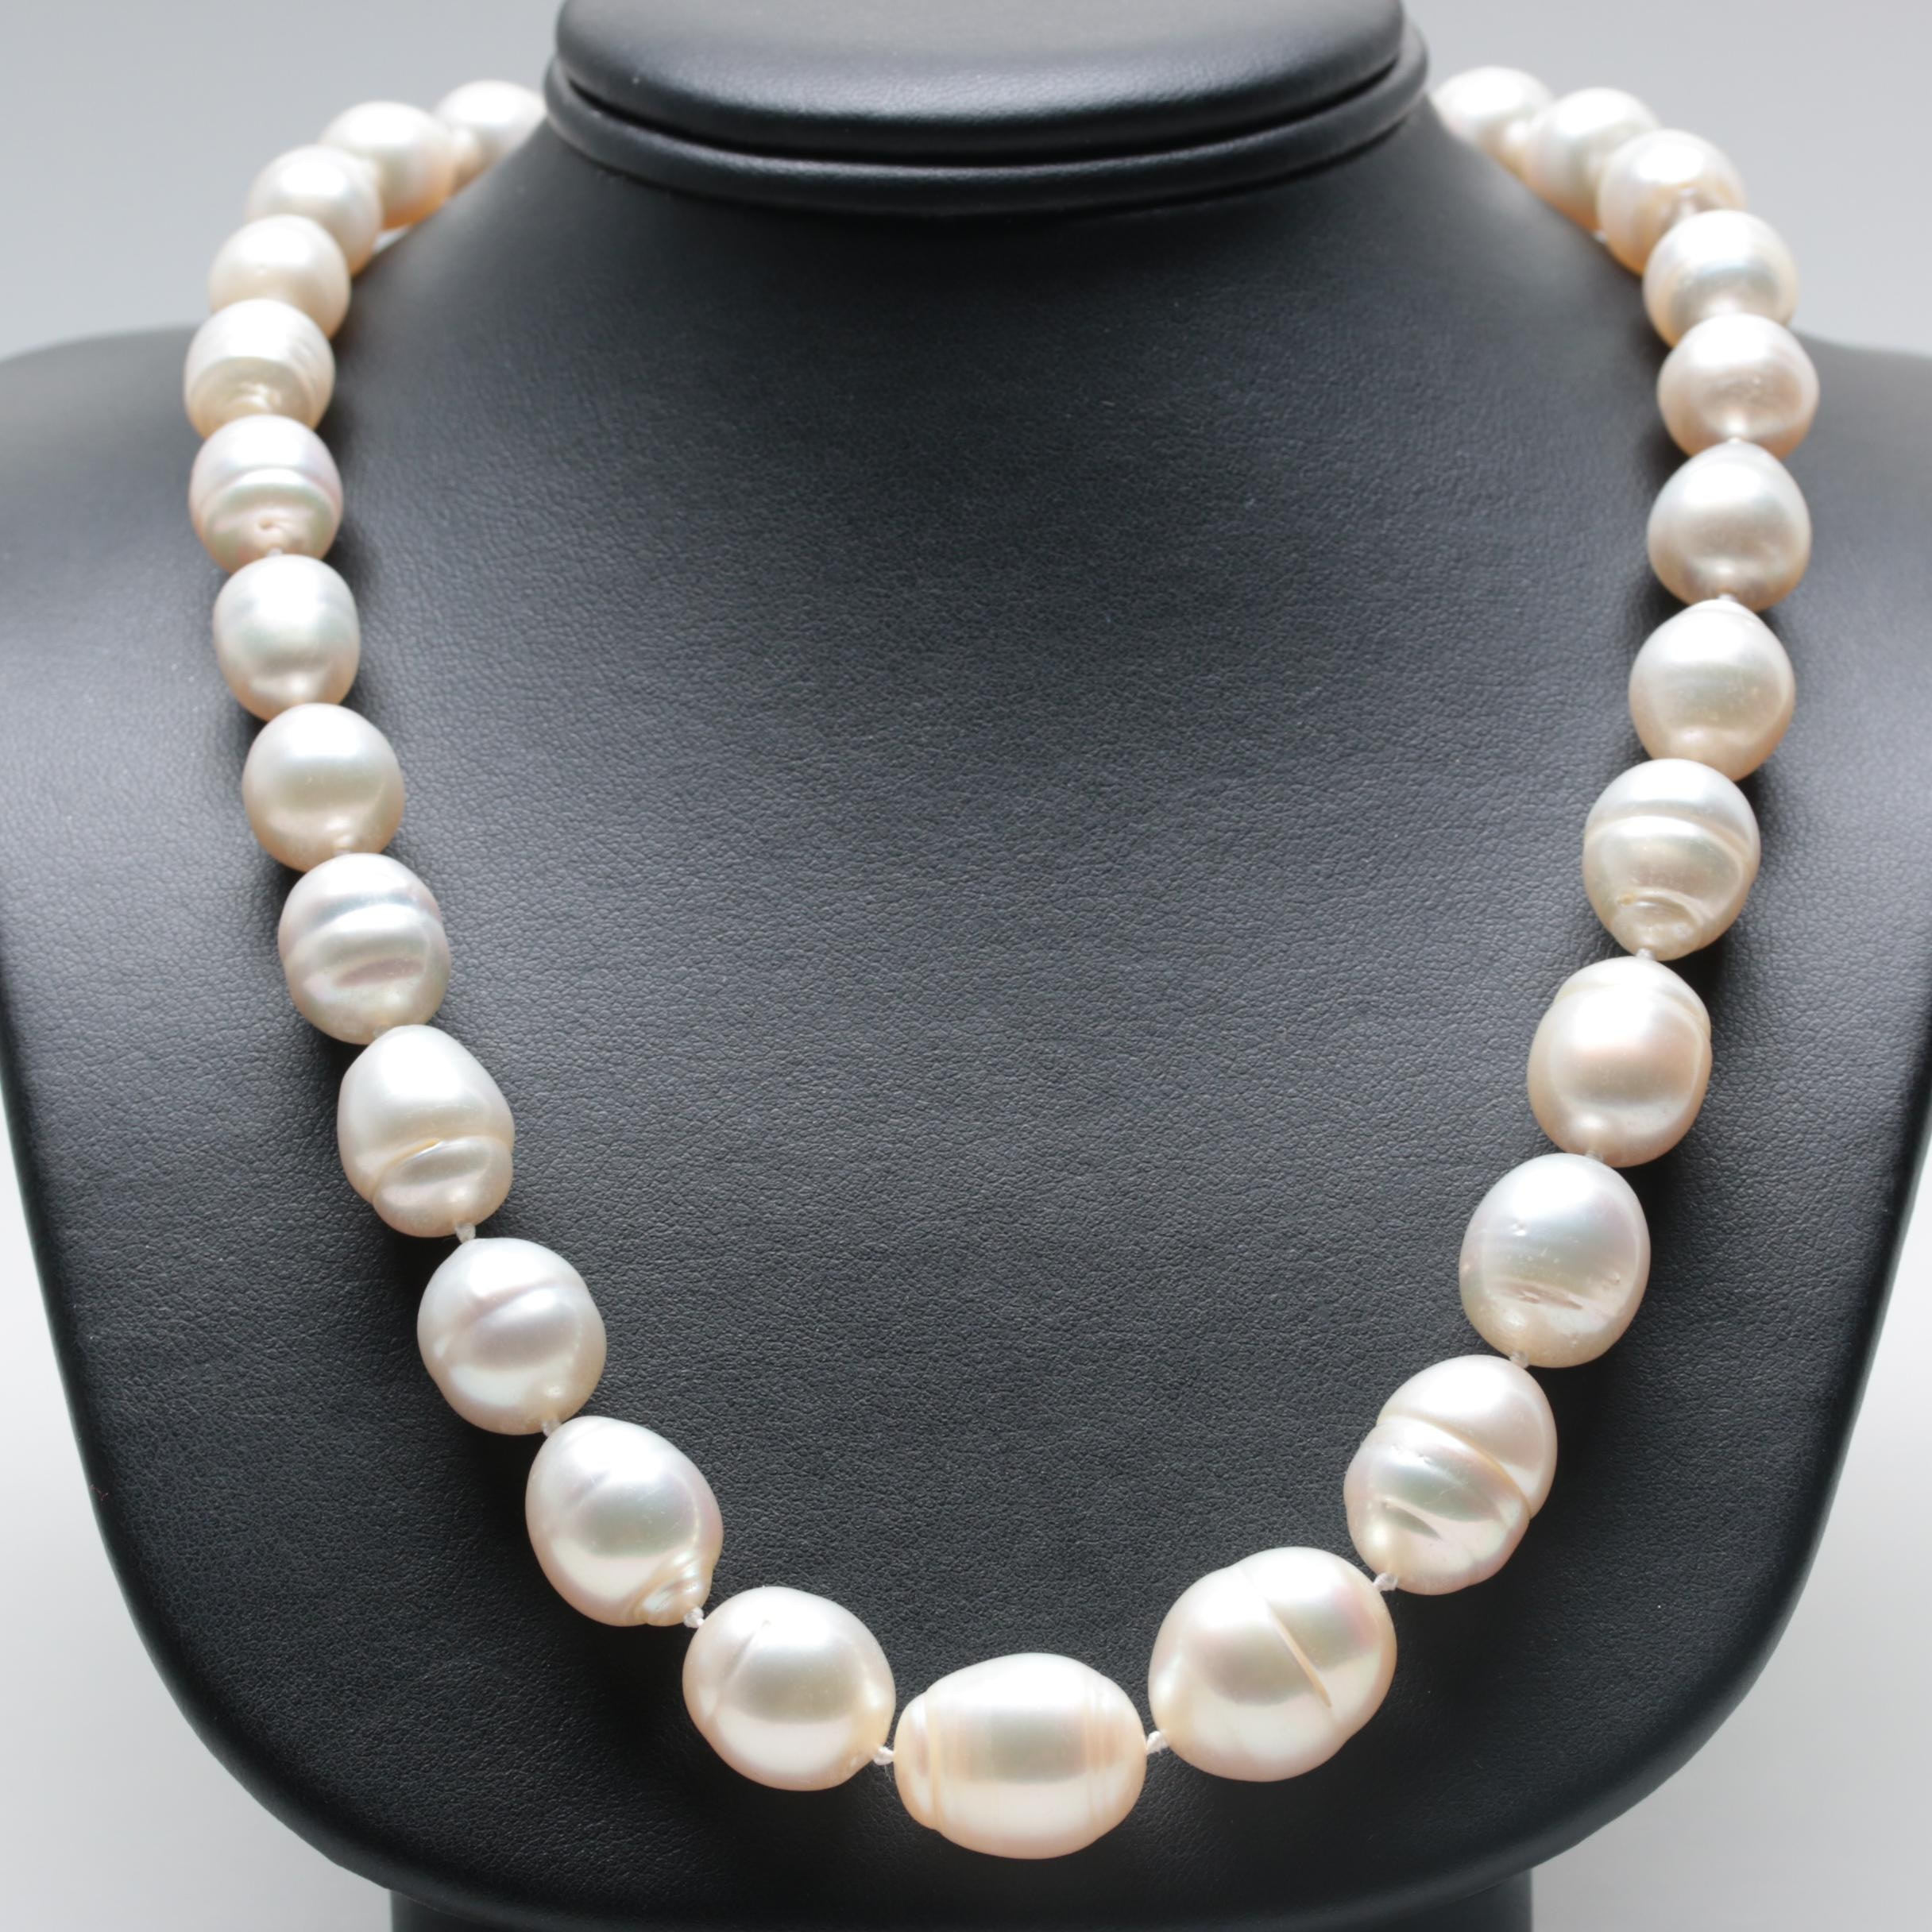 Tara & Sons 14K White Gold Cultured Baroque Pearl Necklace with Diamond Clasp